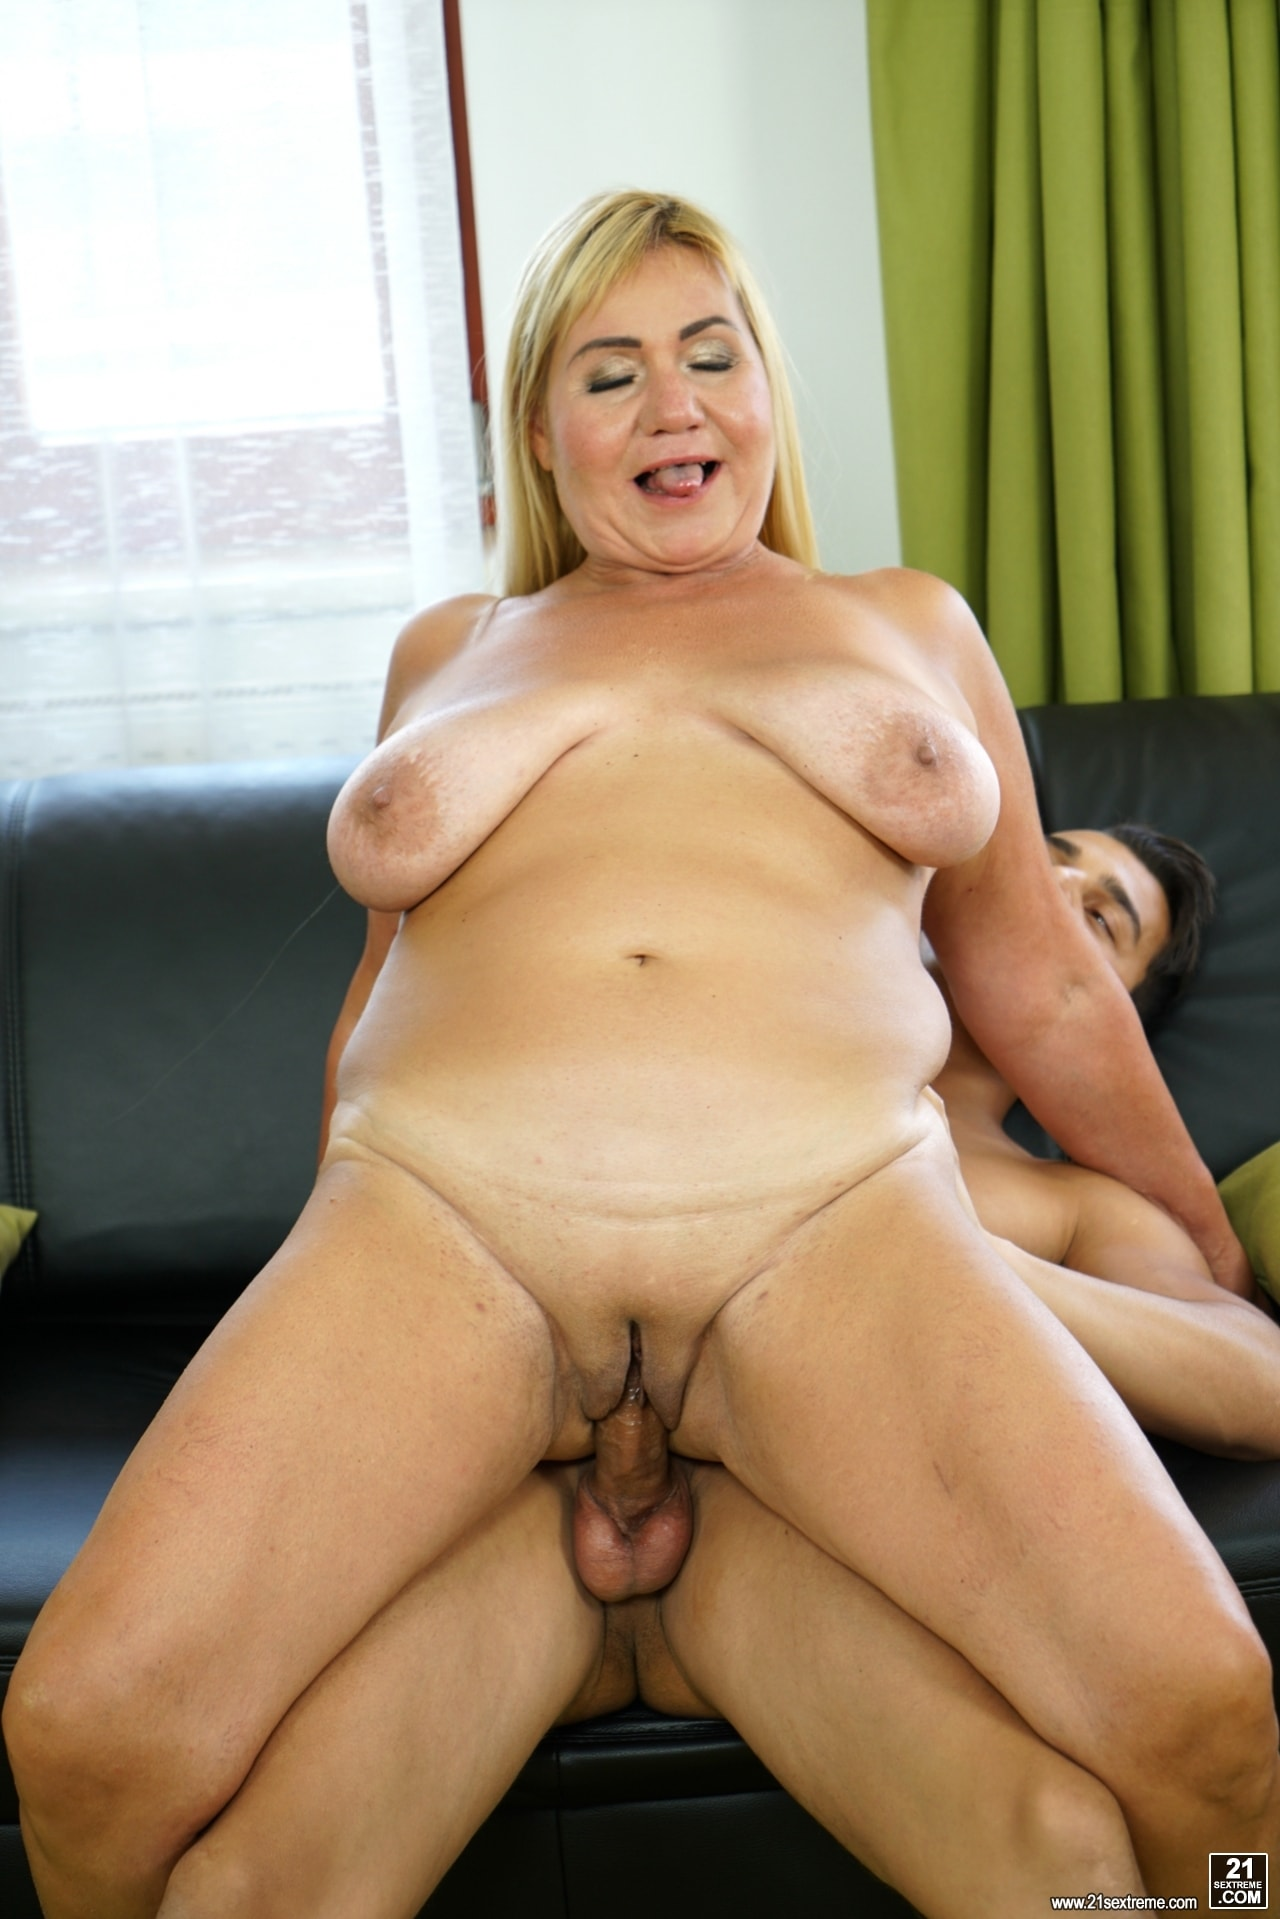 21Sextury 'Come Play With Granny' starring Pam Pink (Photo 128)